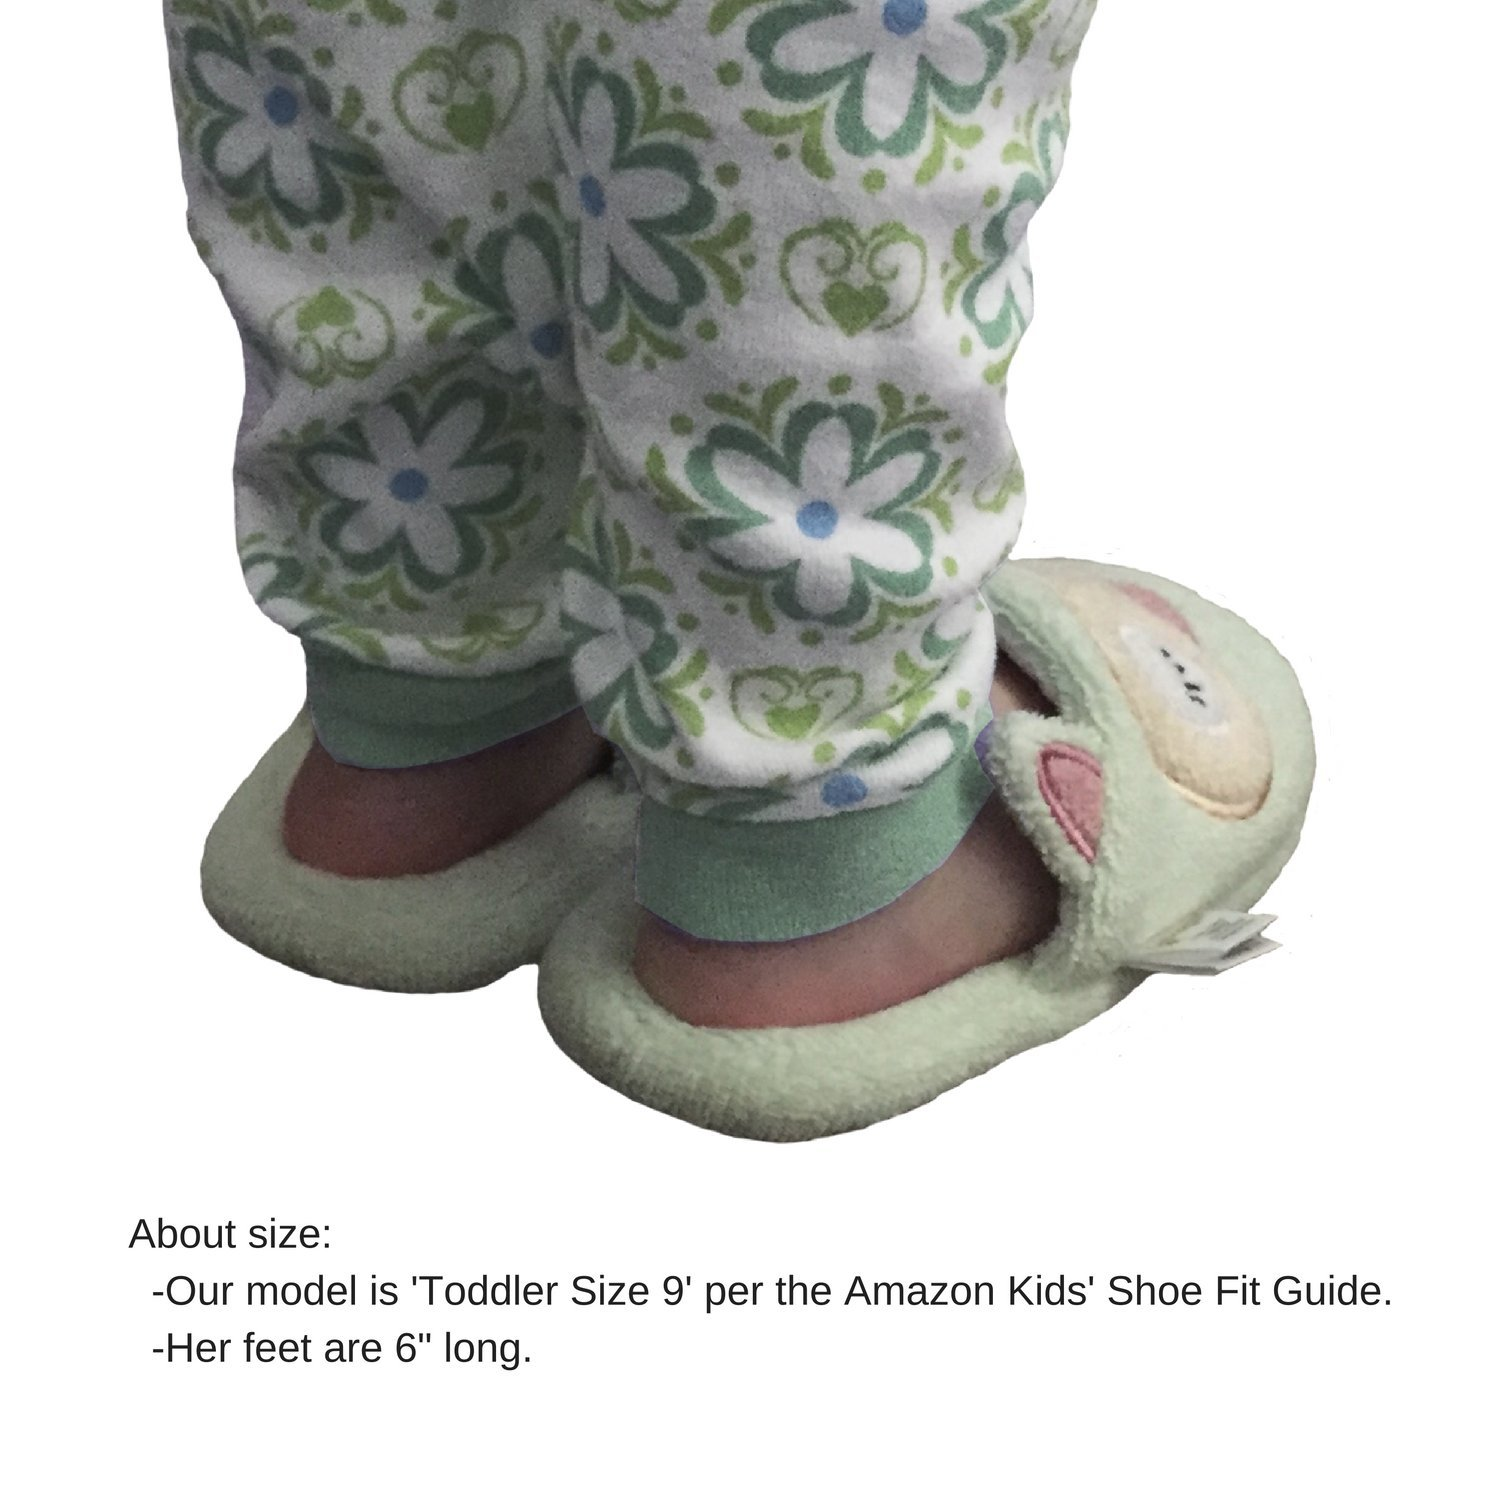 Breganwood Organics Toddlers Terry House Slippers for Boys and Girls, Closed Toe with Non Slip Sole, Pastel Peach Animal Design, Busy Beaver by Breganwood Organics (Image #5)